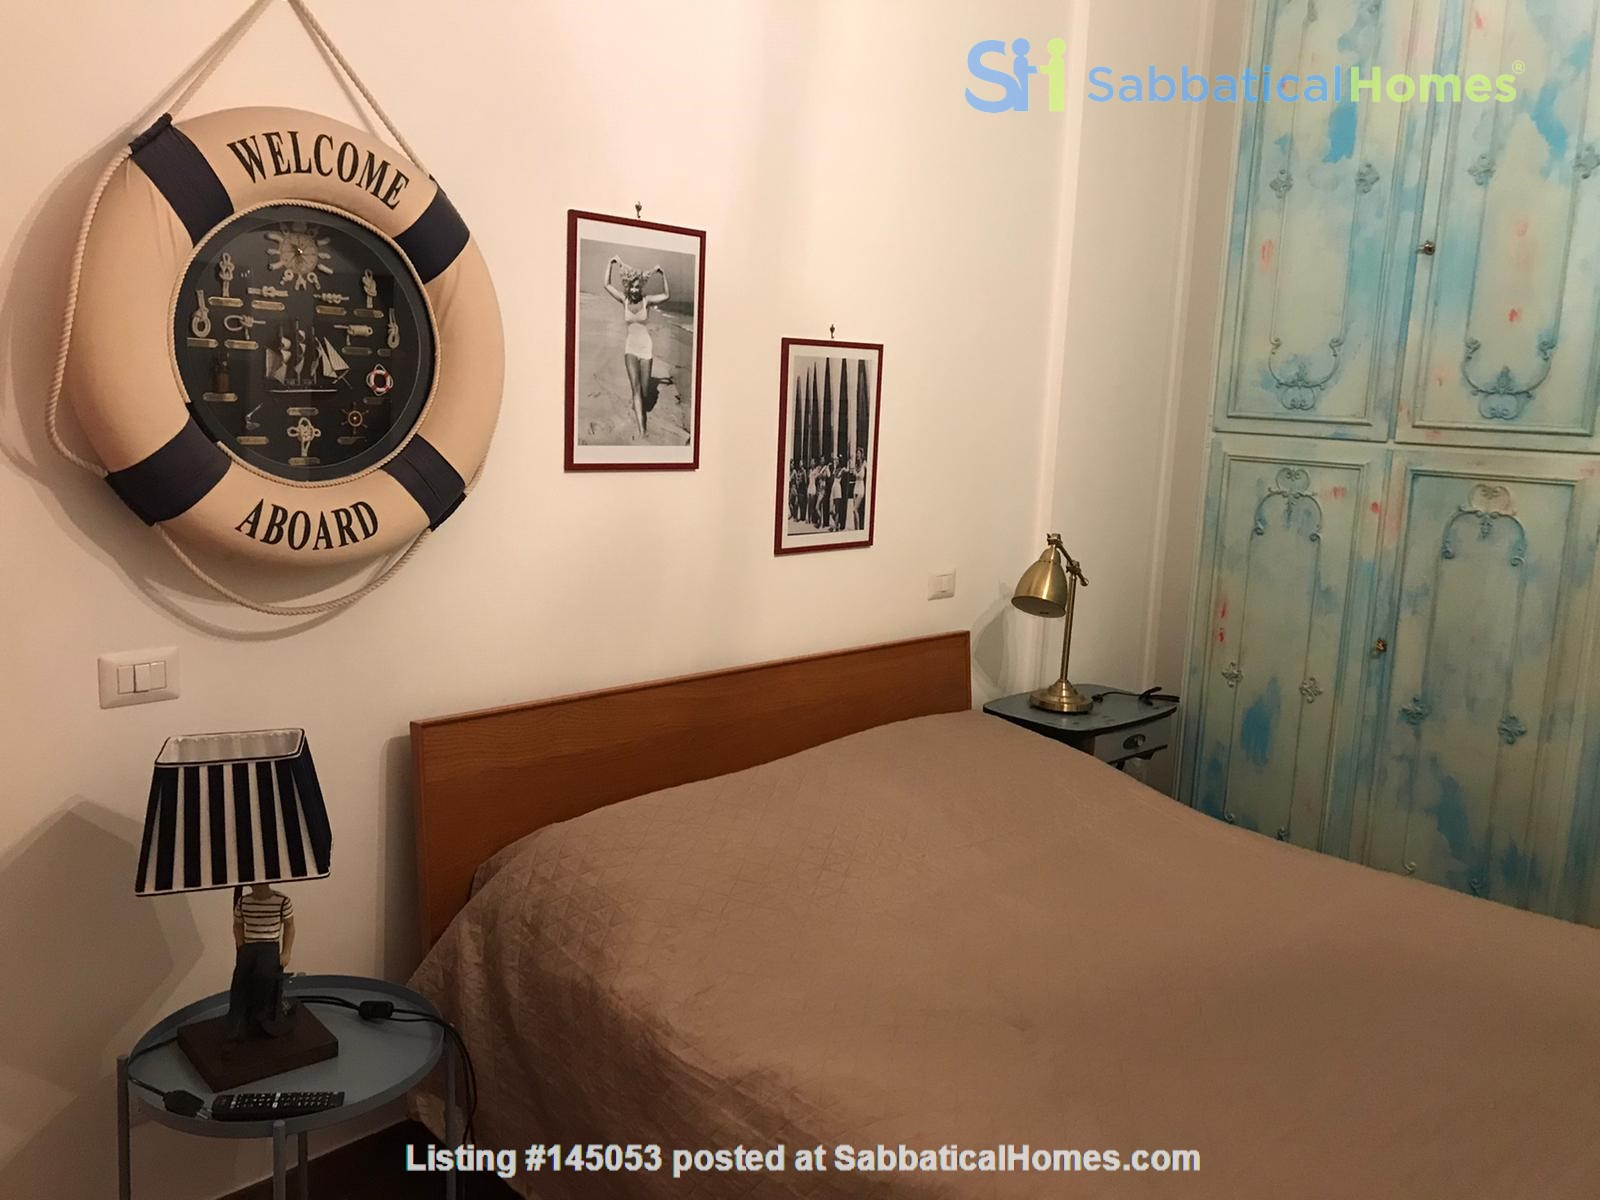 University Sacro Cuore - Brightly apartment with large terrace. Home Rental in Roma, Lazio, Italy 5